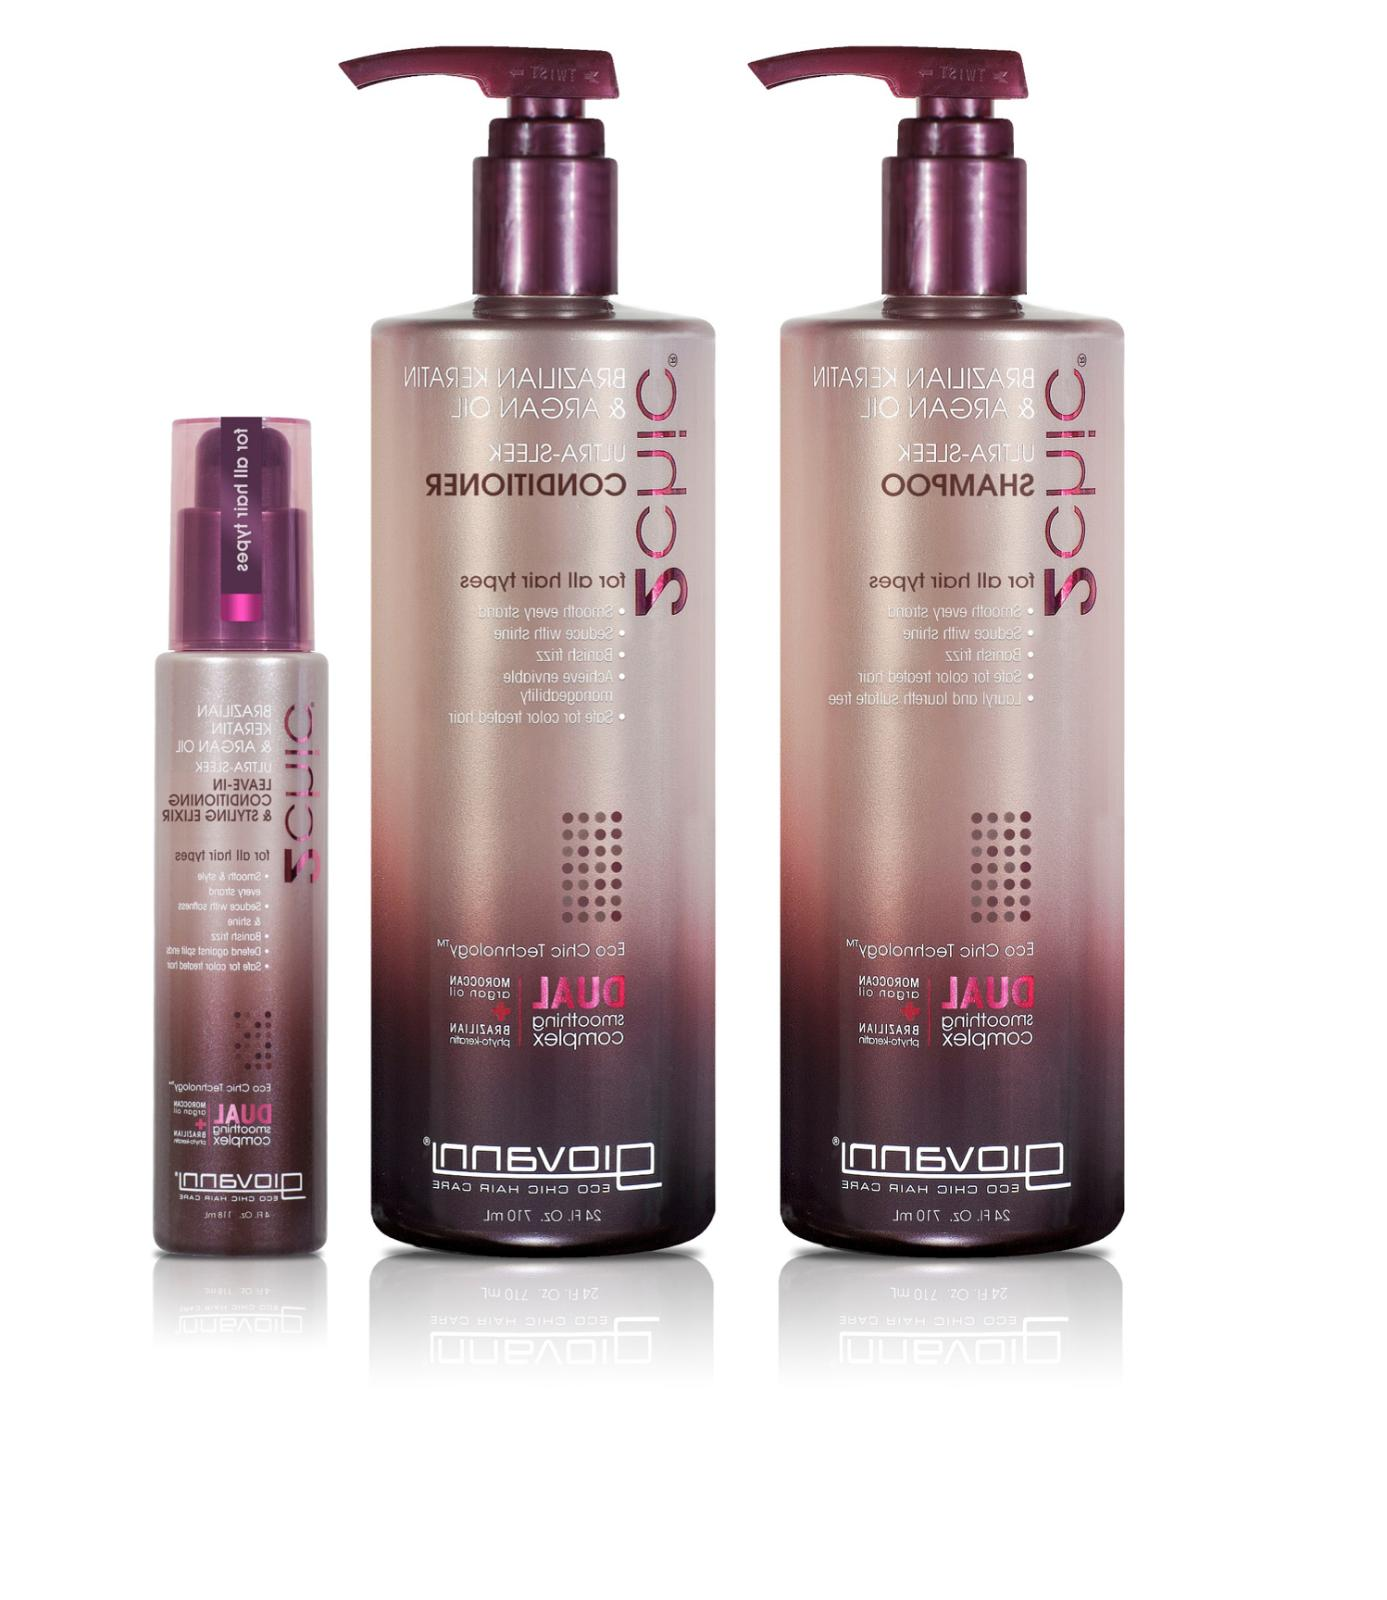 2chic brazilian keratin argan oil